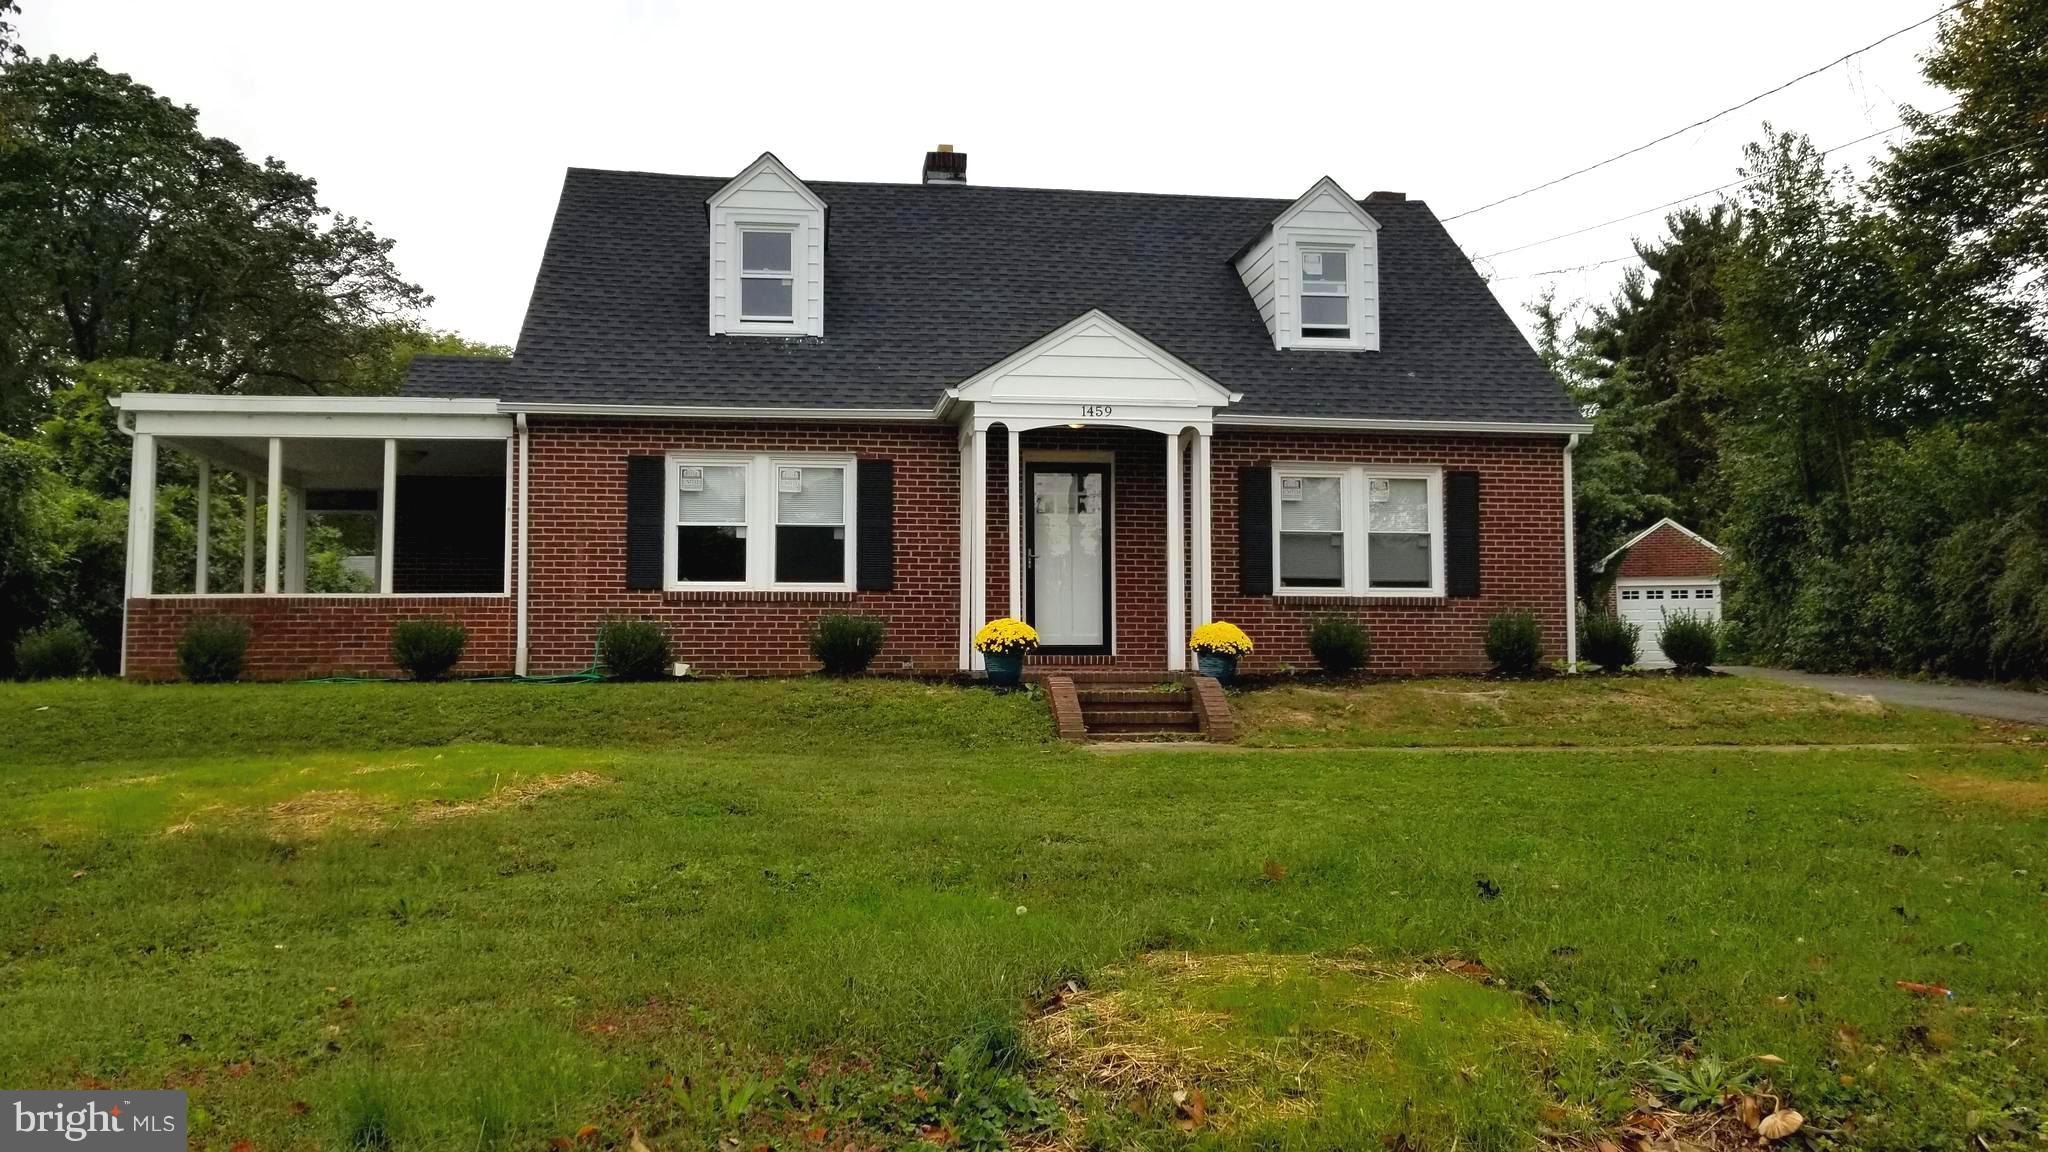 1459 PERRYVILLE ROAD, PERRYVILLE, MD 21903